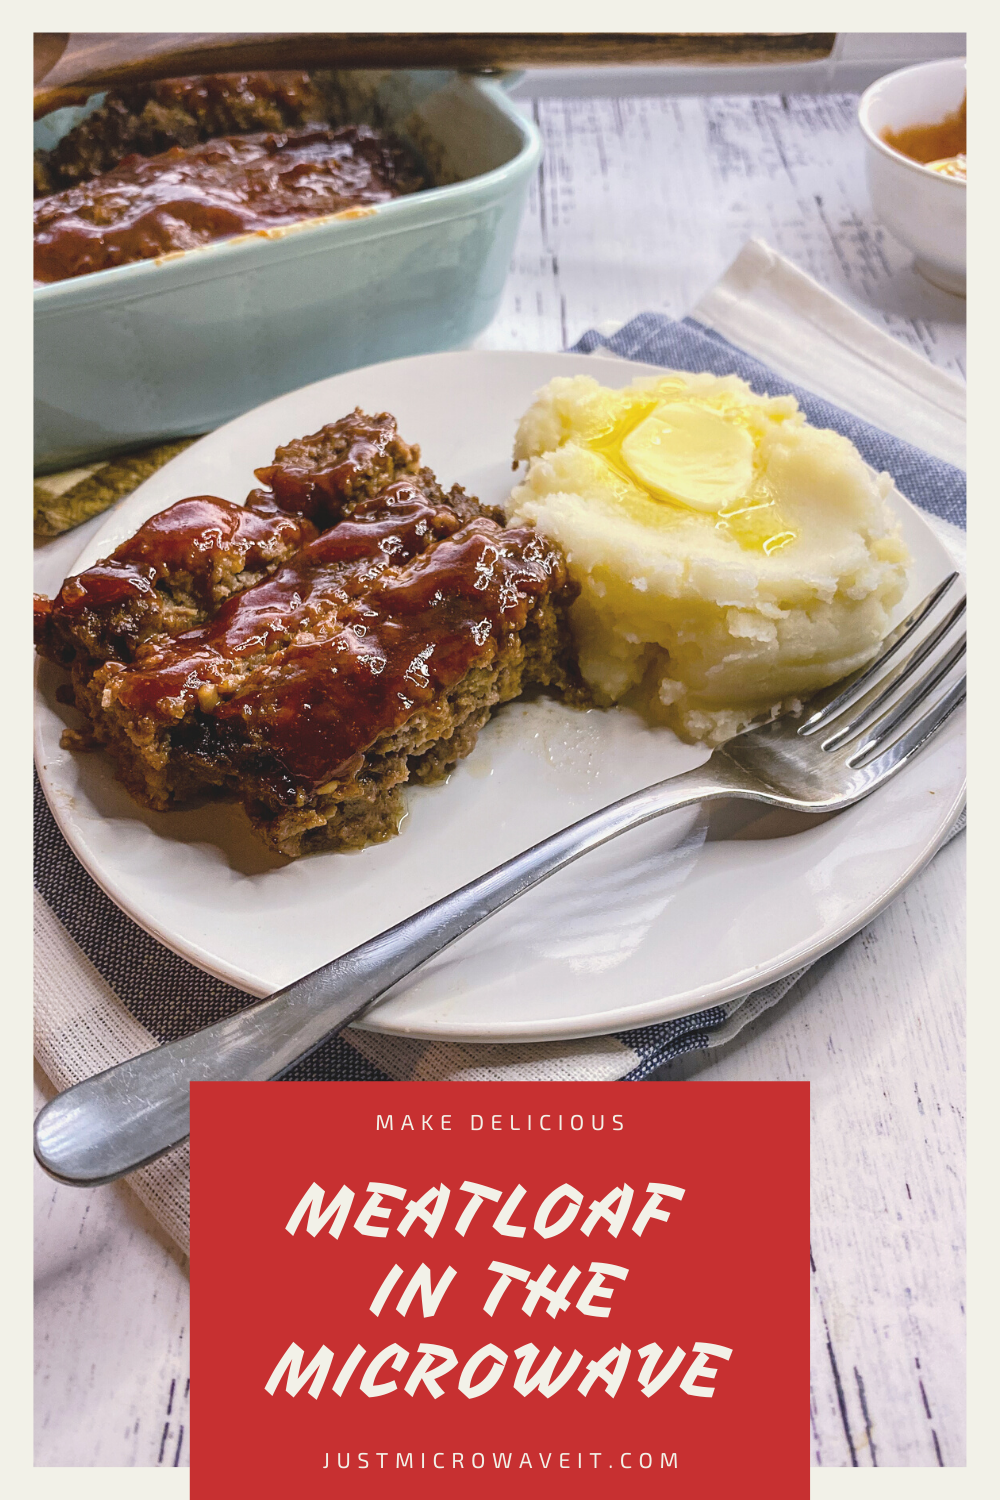 Close up view of three slices of meatloaf topped in meatloaf sauce next to a pile of mashed potatoes with melted butter on a white plate with fork. In the background is the baking dish full of more meatloaf.